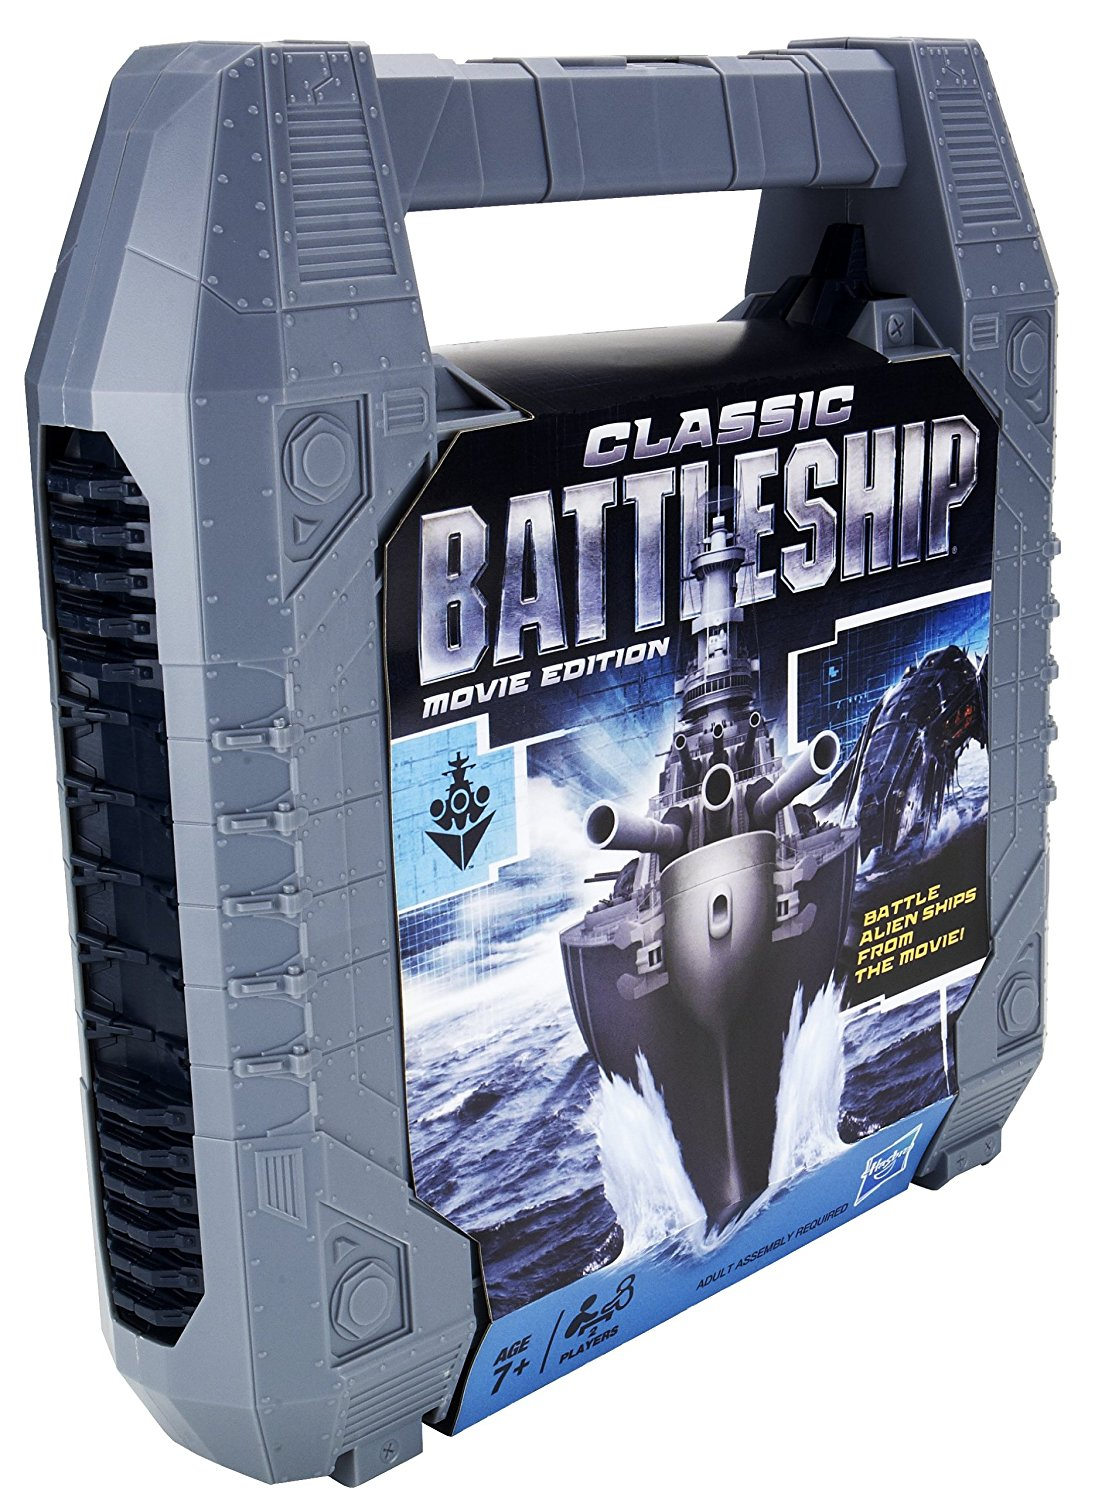 Classic Battleship Movie Edition By Hasbro by